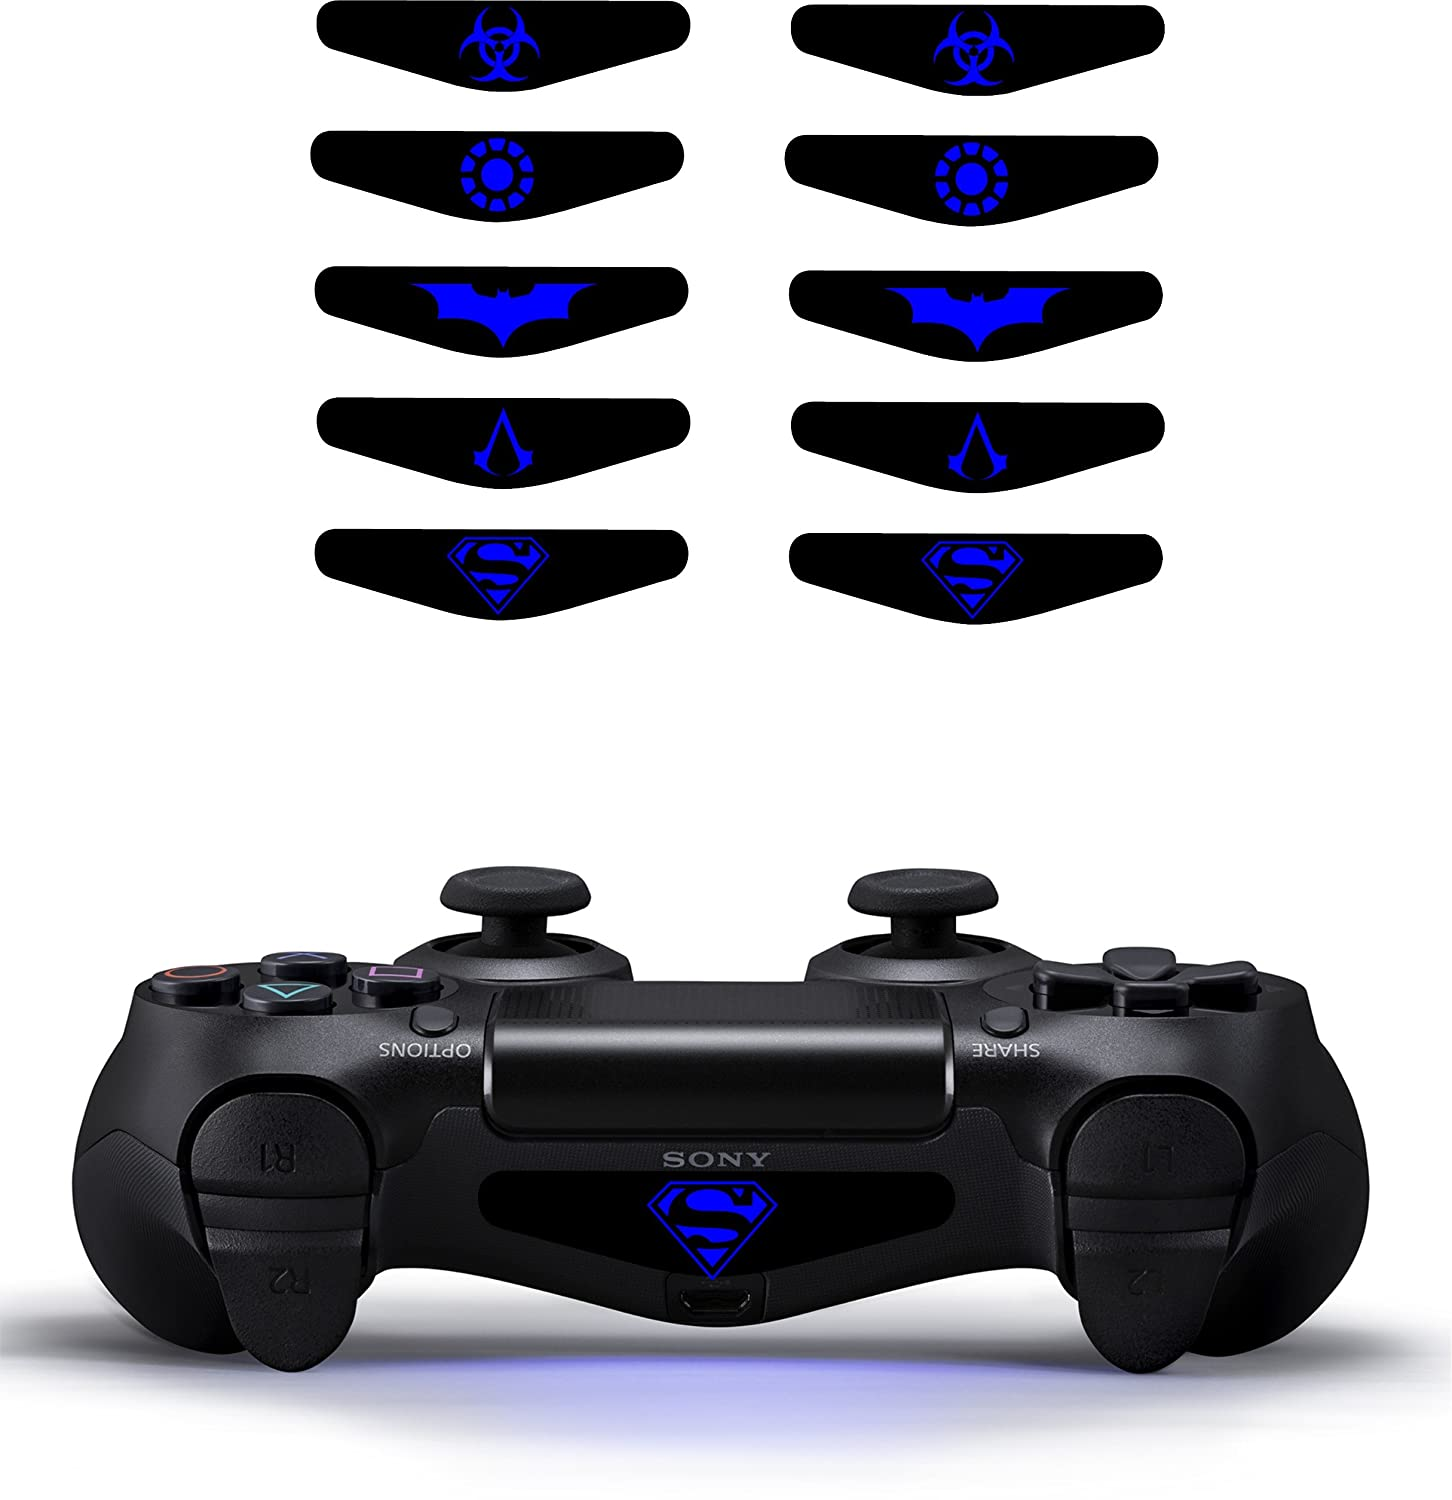 Playstation 4 light bar decal sticker ps4 dualshock controller playstation 4 light bar decal sticker ps4 dualshock controller set of ten super hero themed amazon pc video games aloadofball